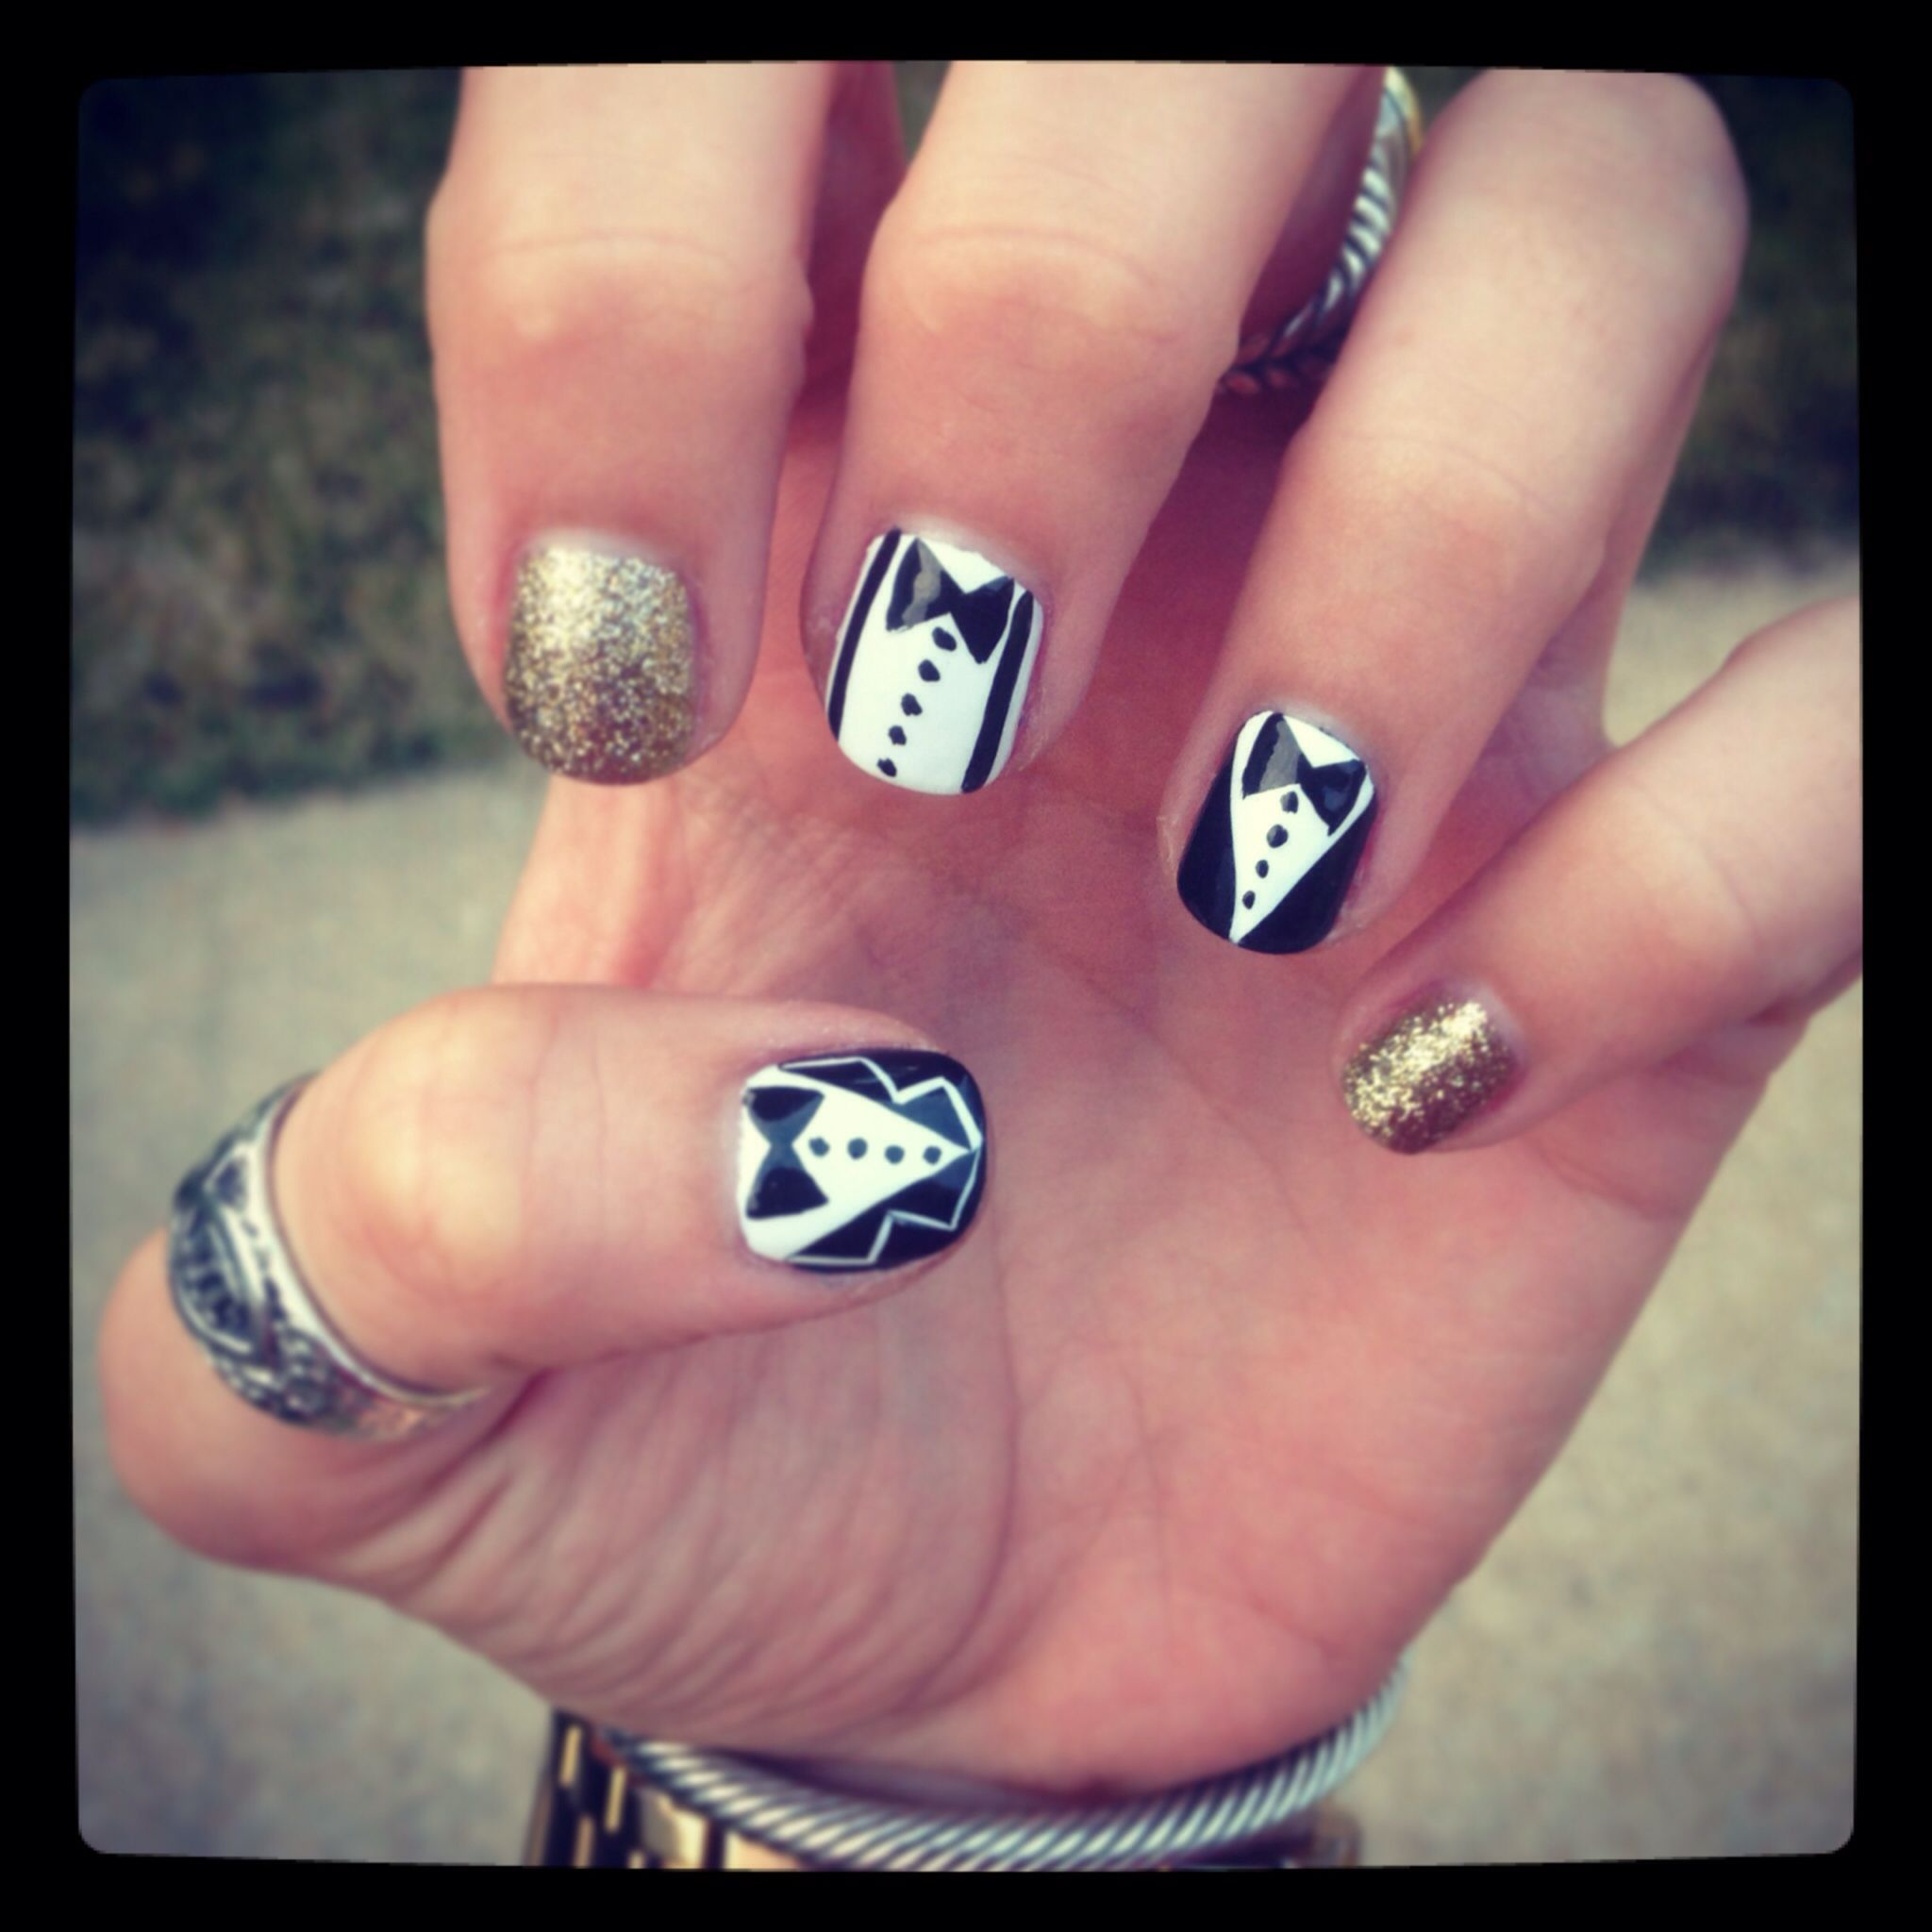 Justin Timberlake nails. Suit and tie   craftayy ...